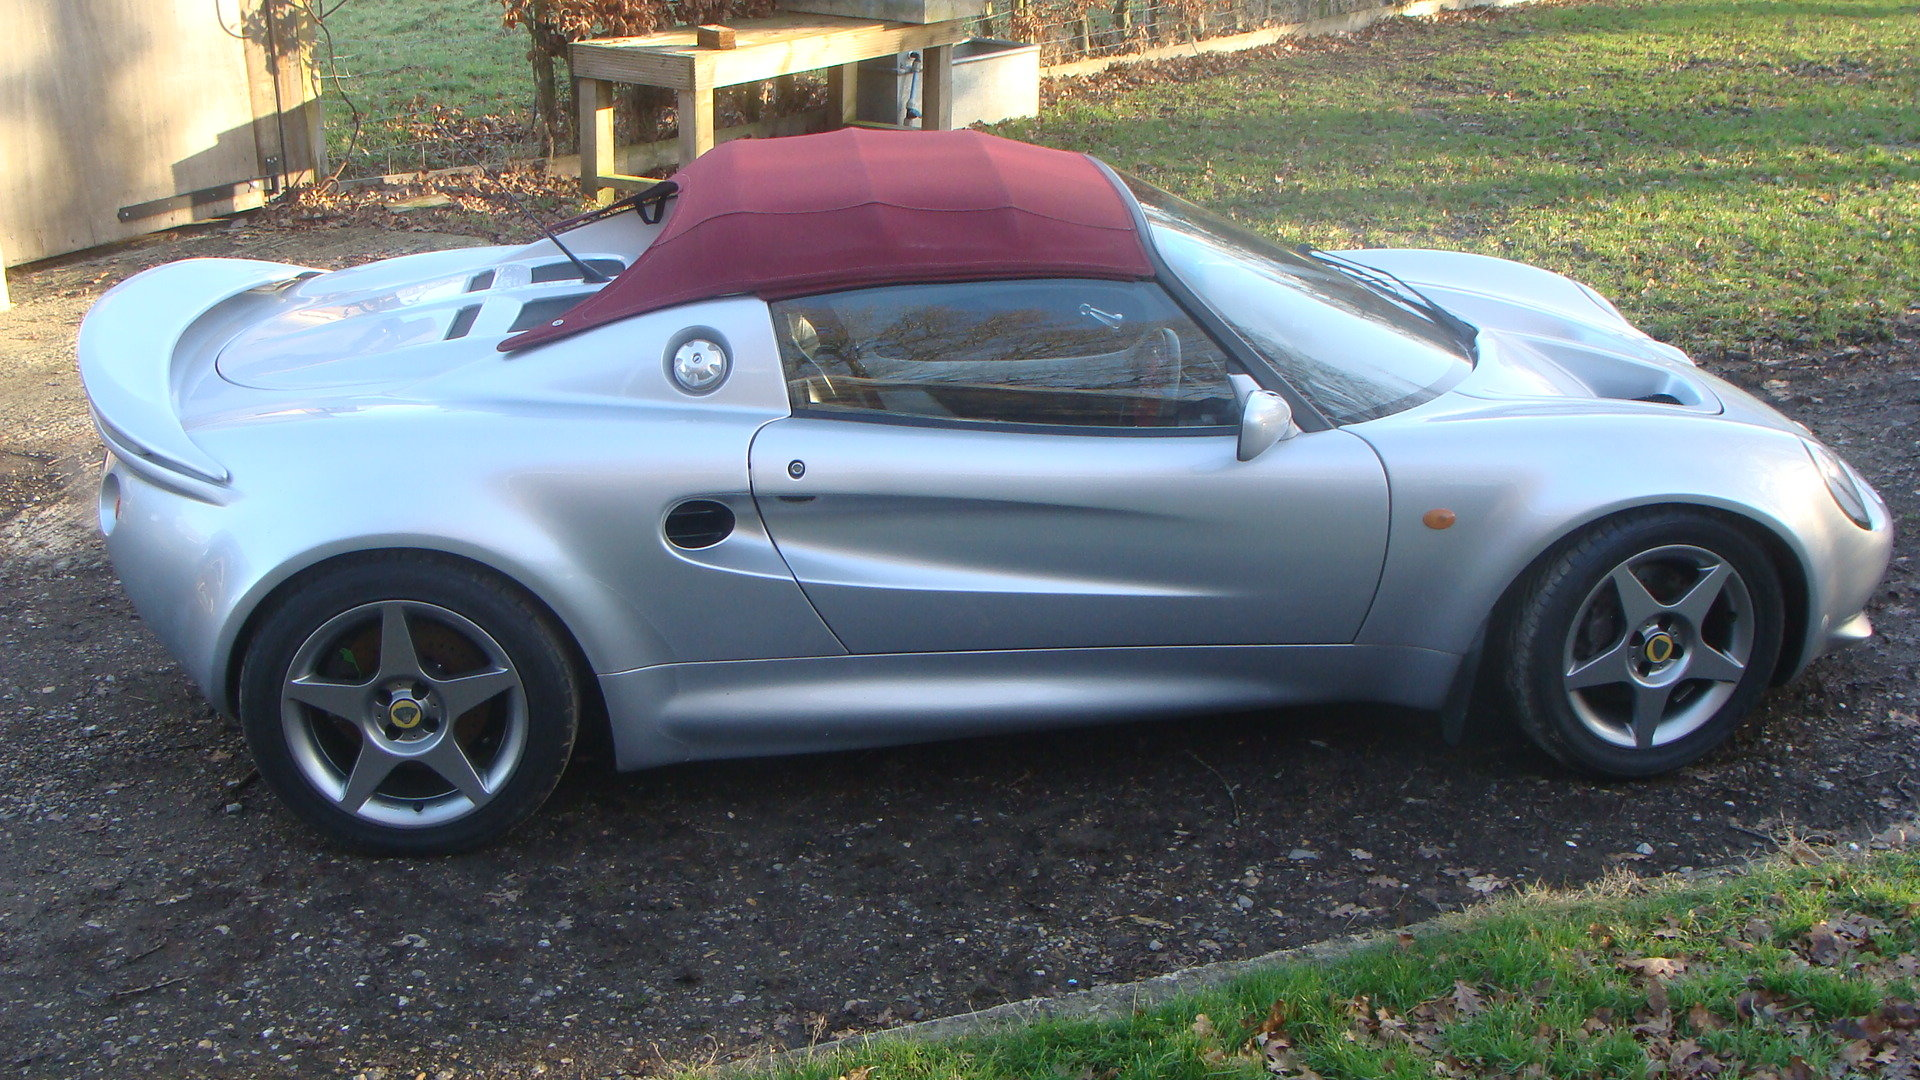 2000 Lotus Elise 160 Sport roadster For Sale (picture 1 of 6)